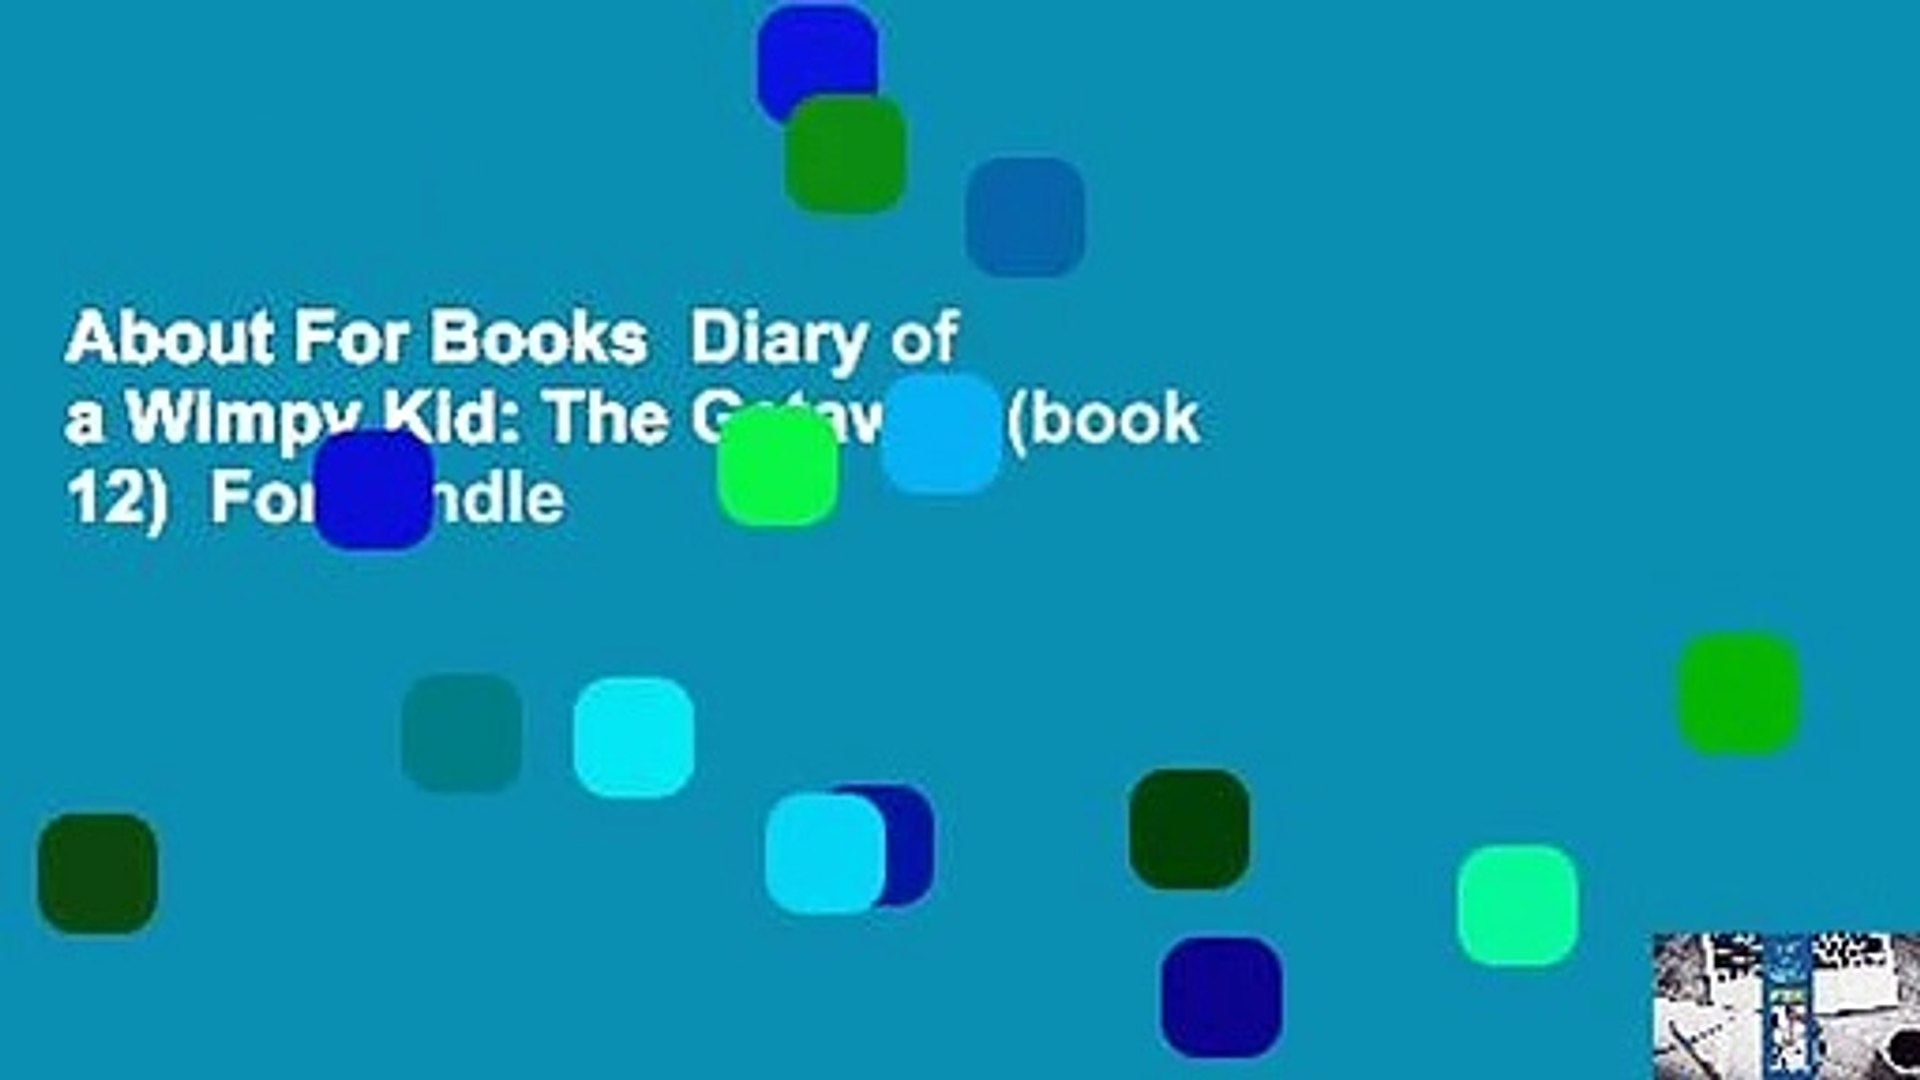 About For Books Diary Of A Wimpy Kid The Getaway Book 12 For